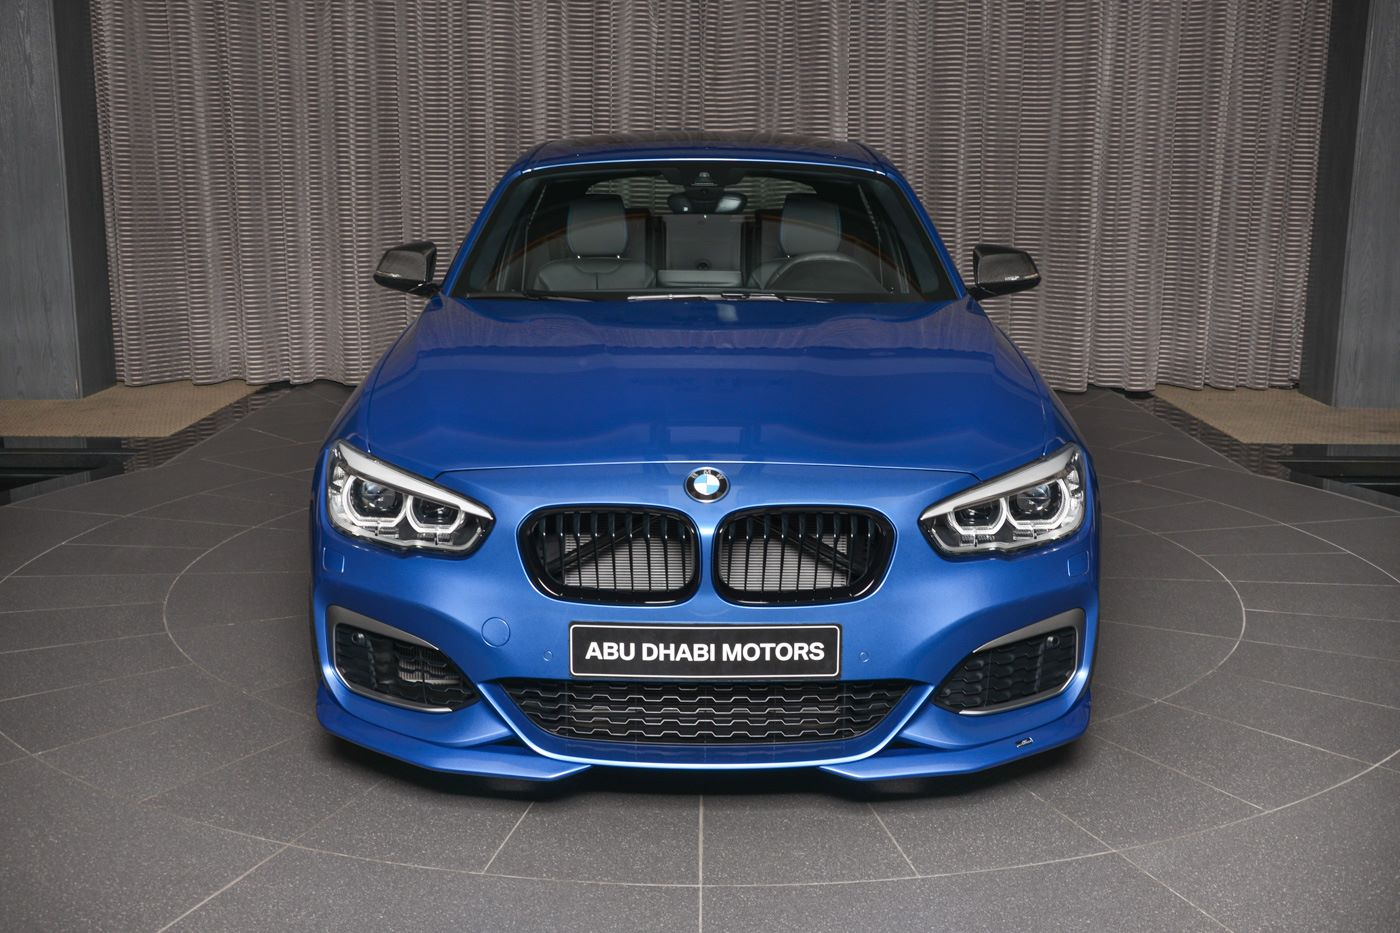 bmw m140i gets serious upgrades before delivery in abu dhabi i new cars. Black Bedroom Furniture Sets. Home Design Ideas